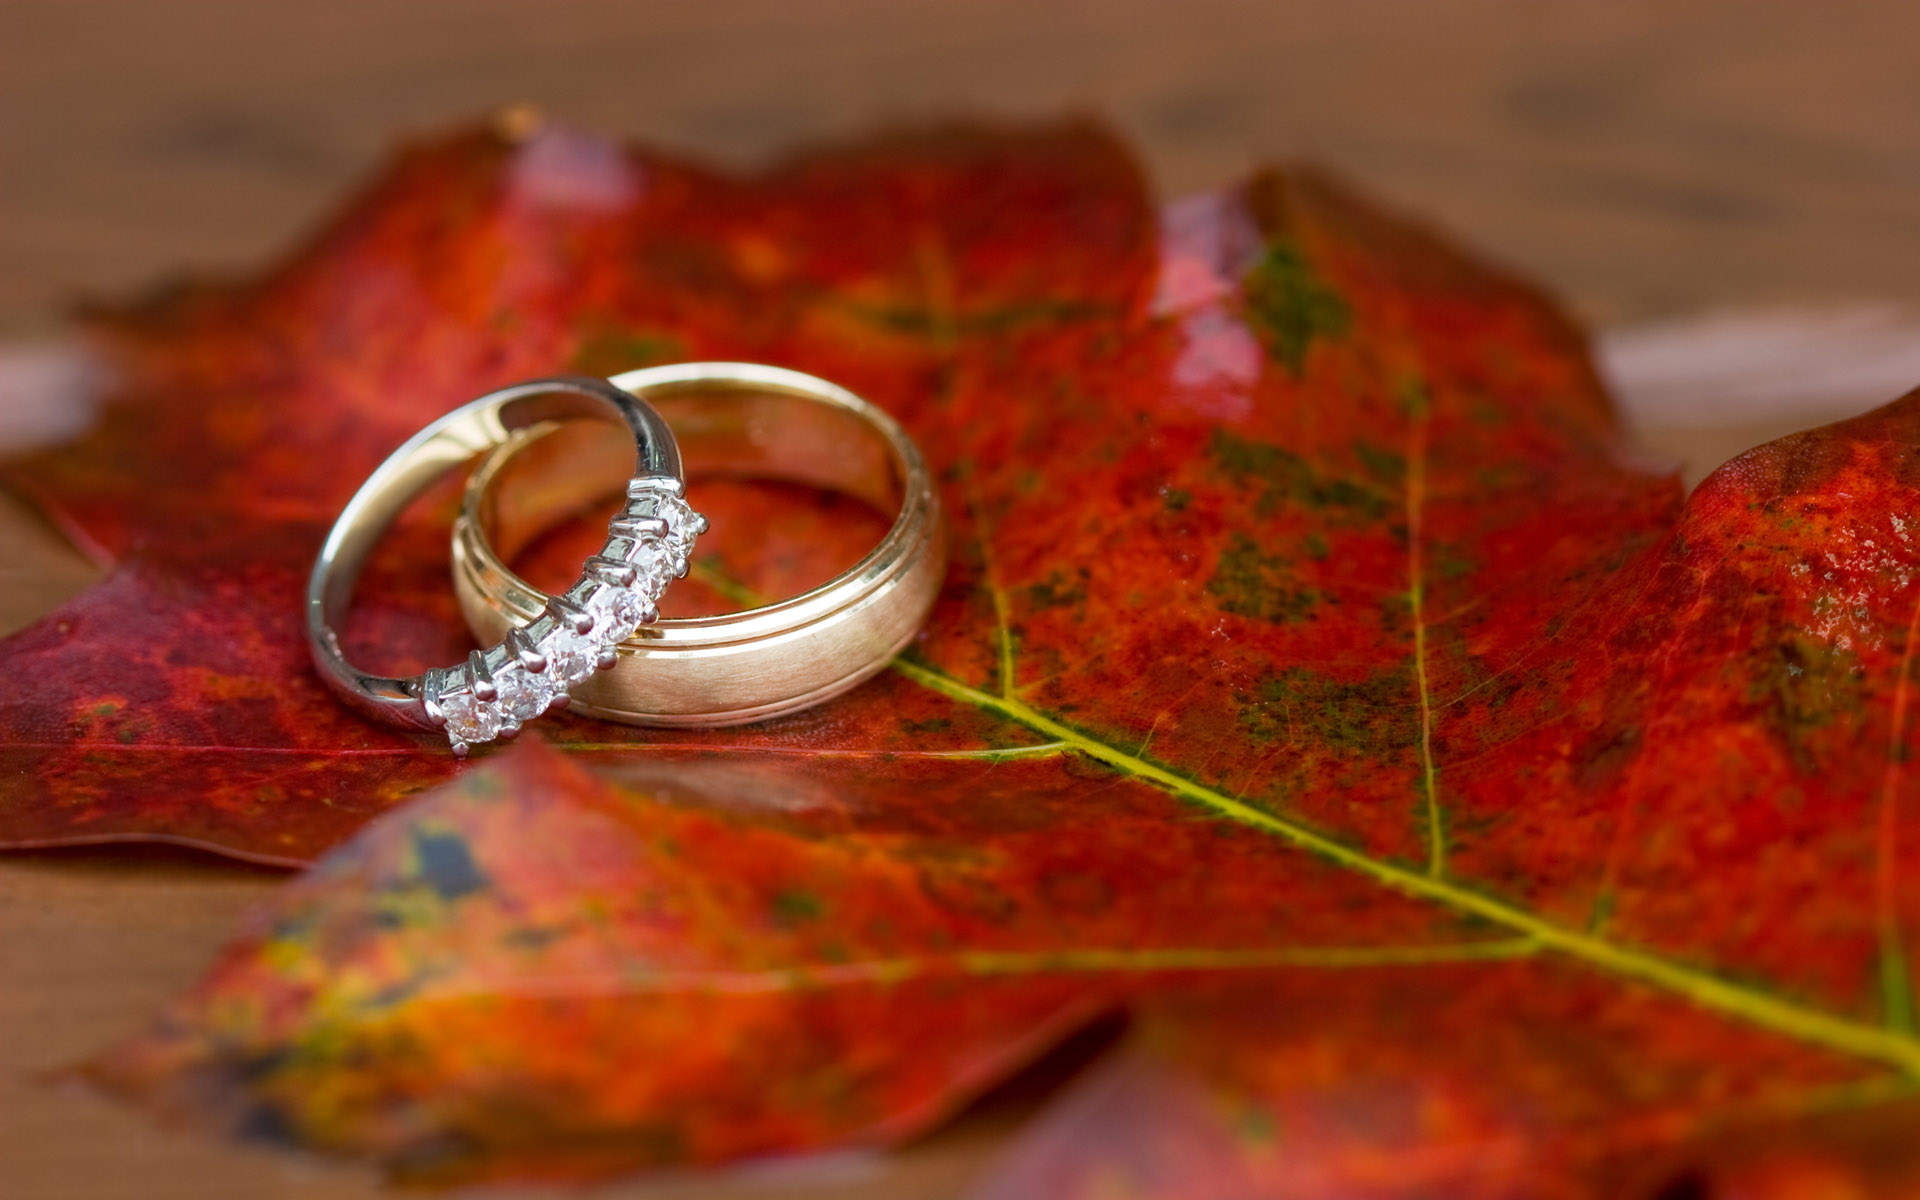 Engagement ring designs for men & women collection 2015-16 (27)